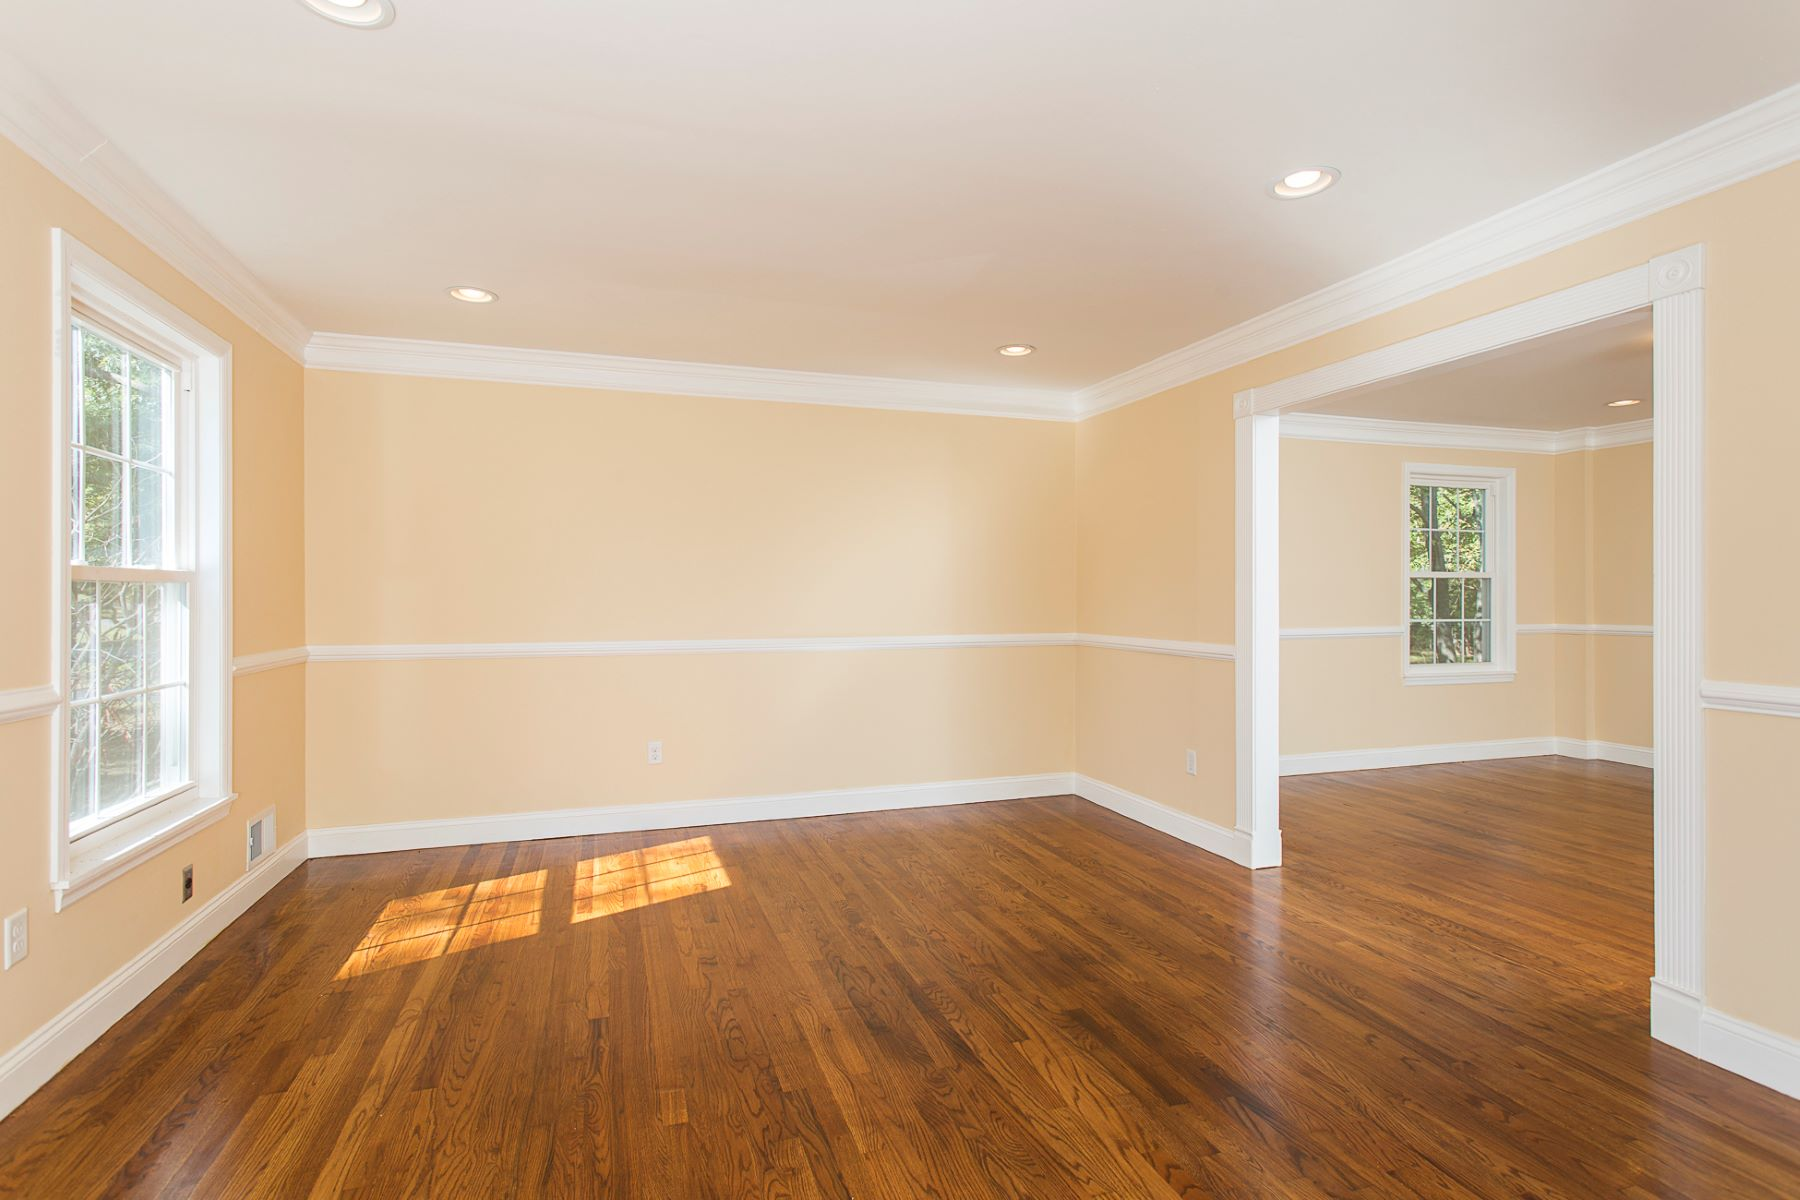 Additional photo for property listing at Completely Re-Done in Montgomery Township 45 Whippoorwill Way, Belle Mead, New Jersey 08502 United States